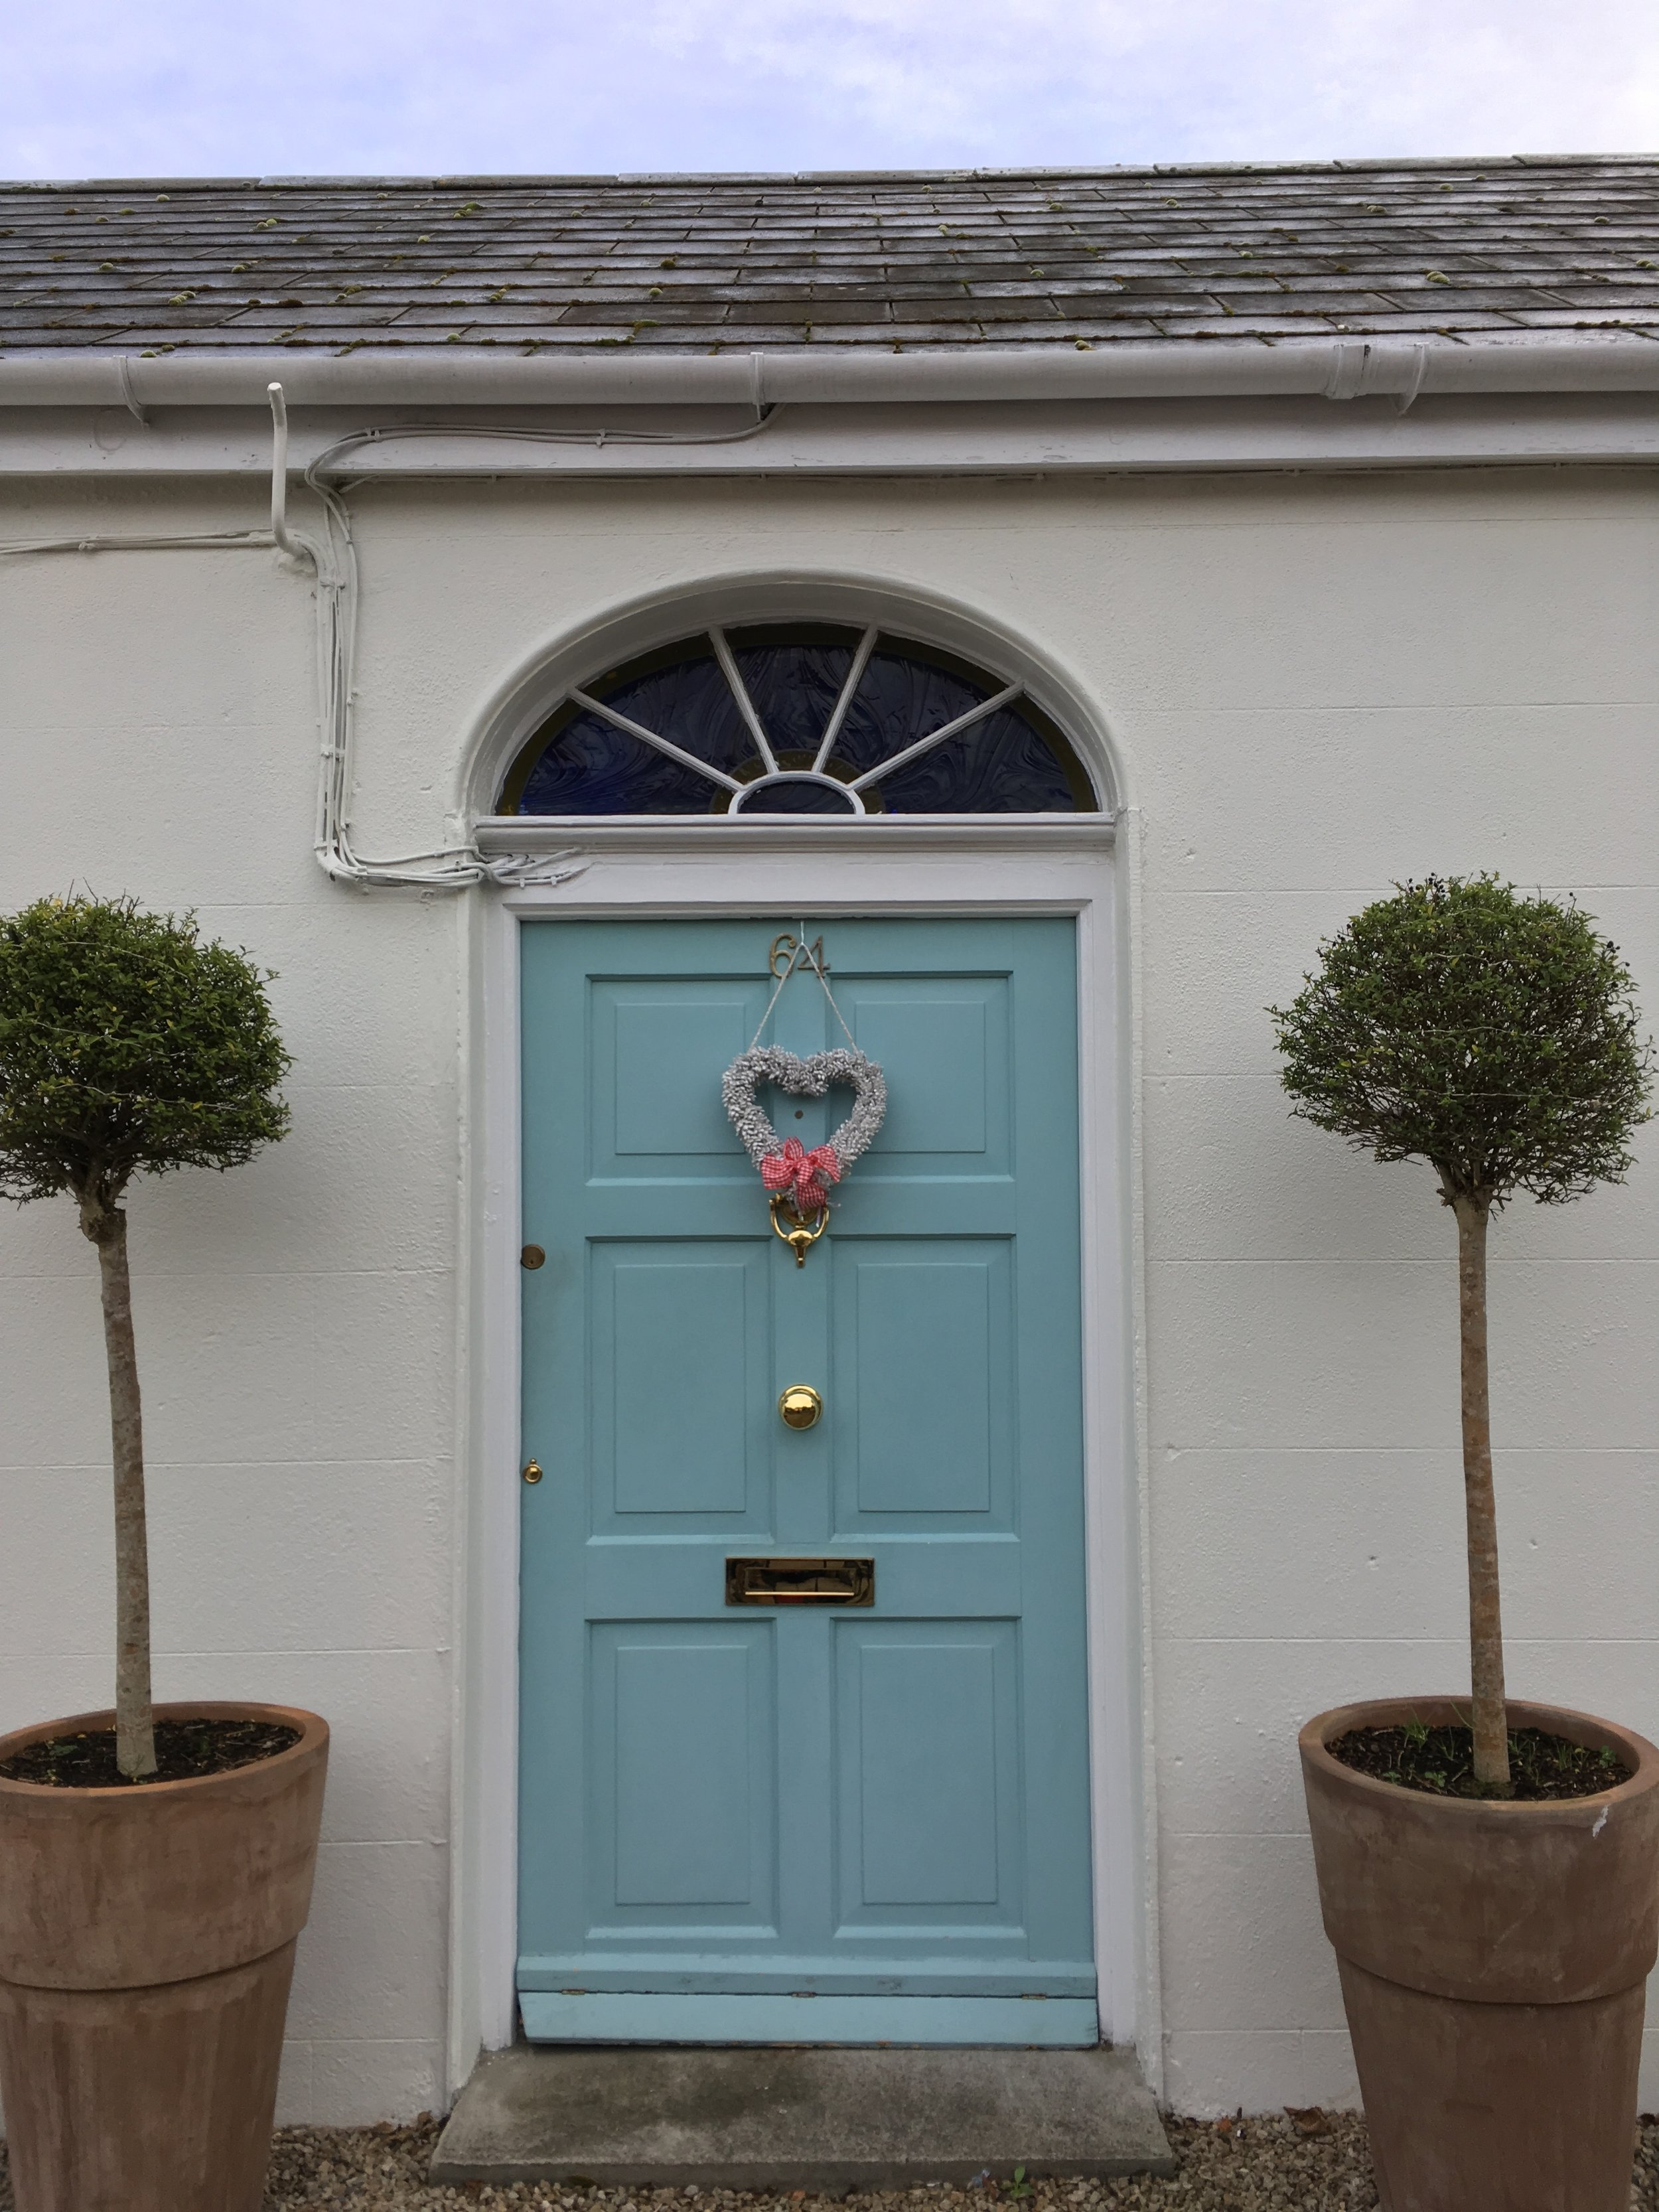 One of my favourite doors in Blackrock